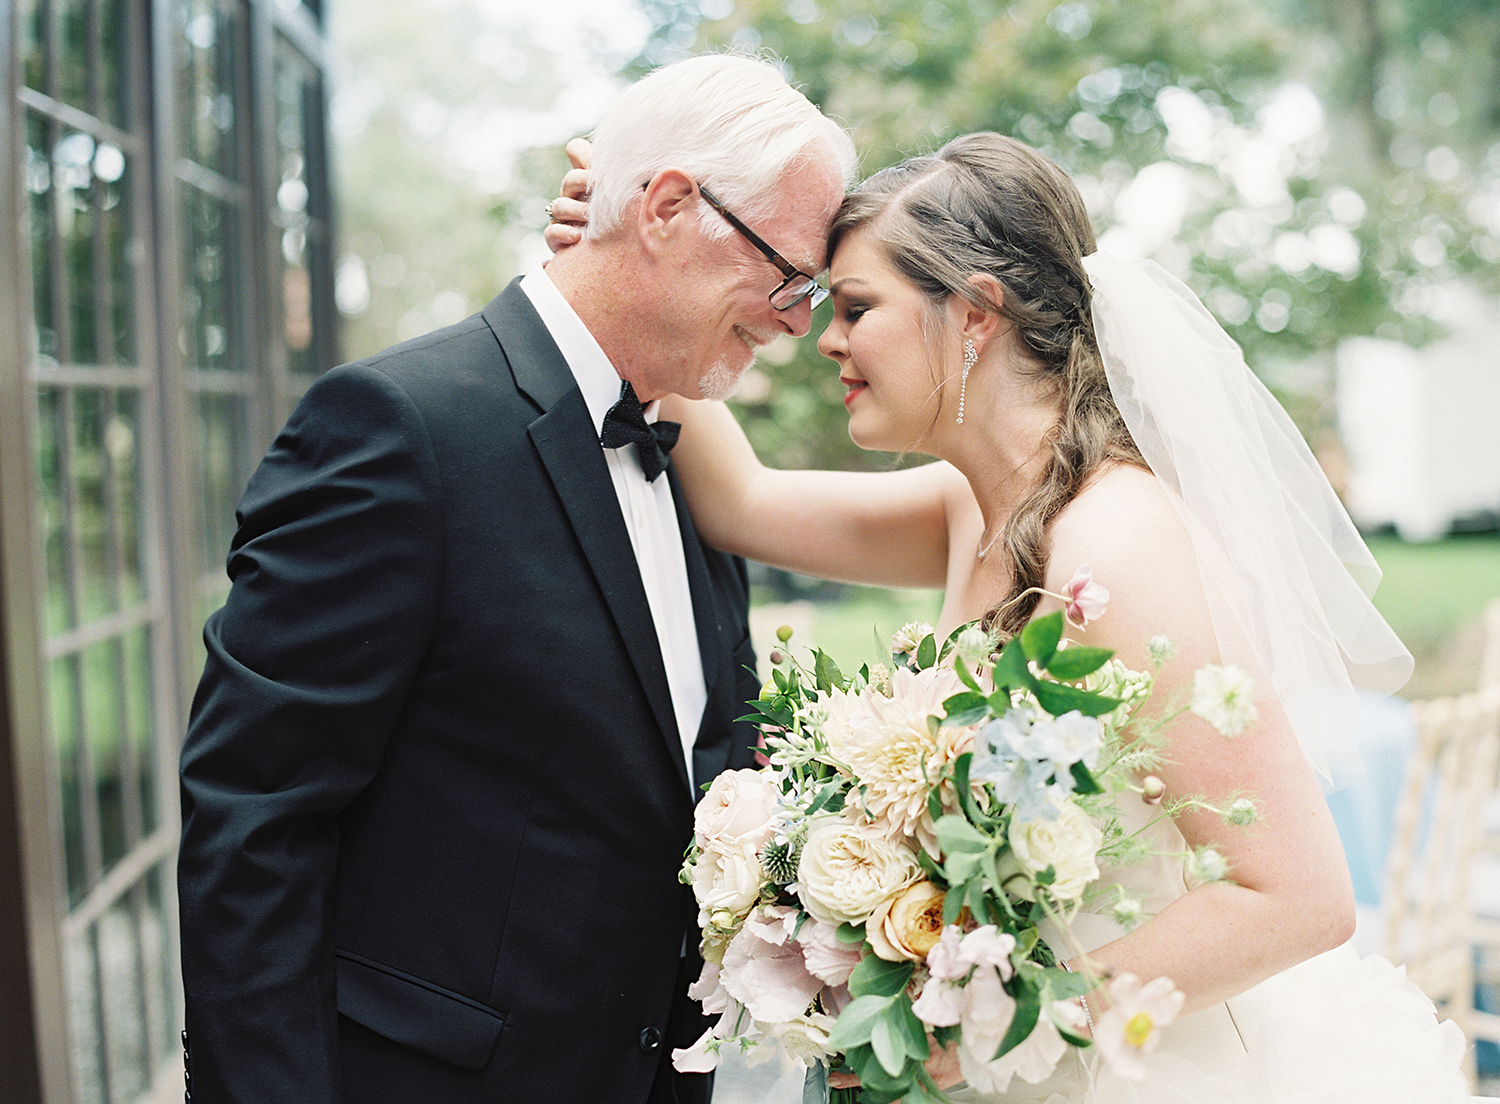 Wedding Looks for Dad by BespokeDaily Blog